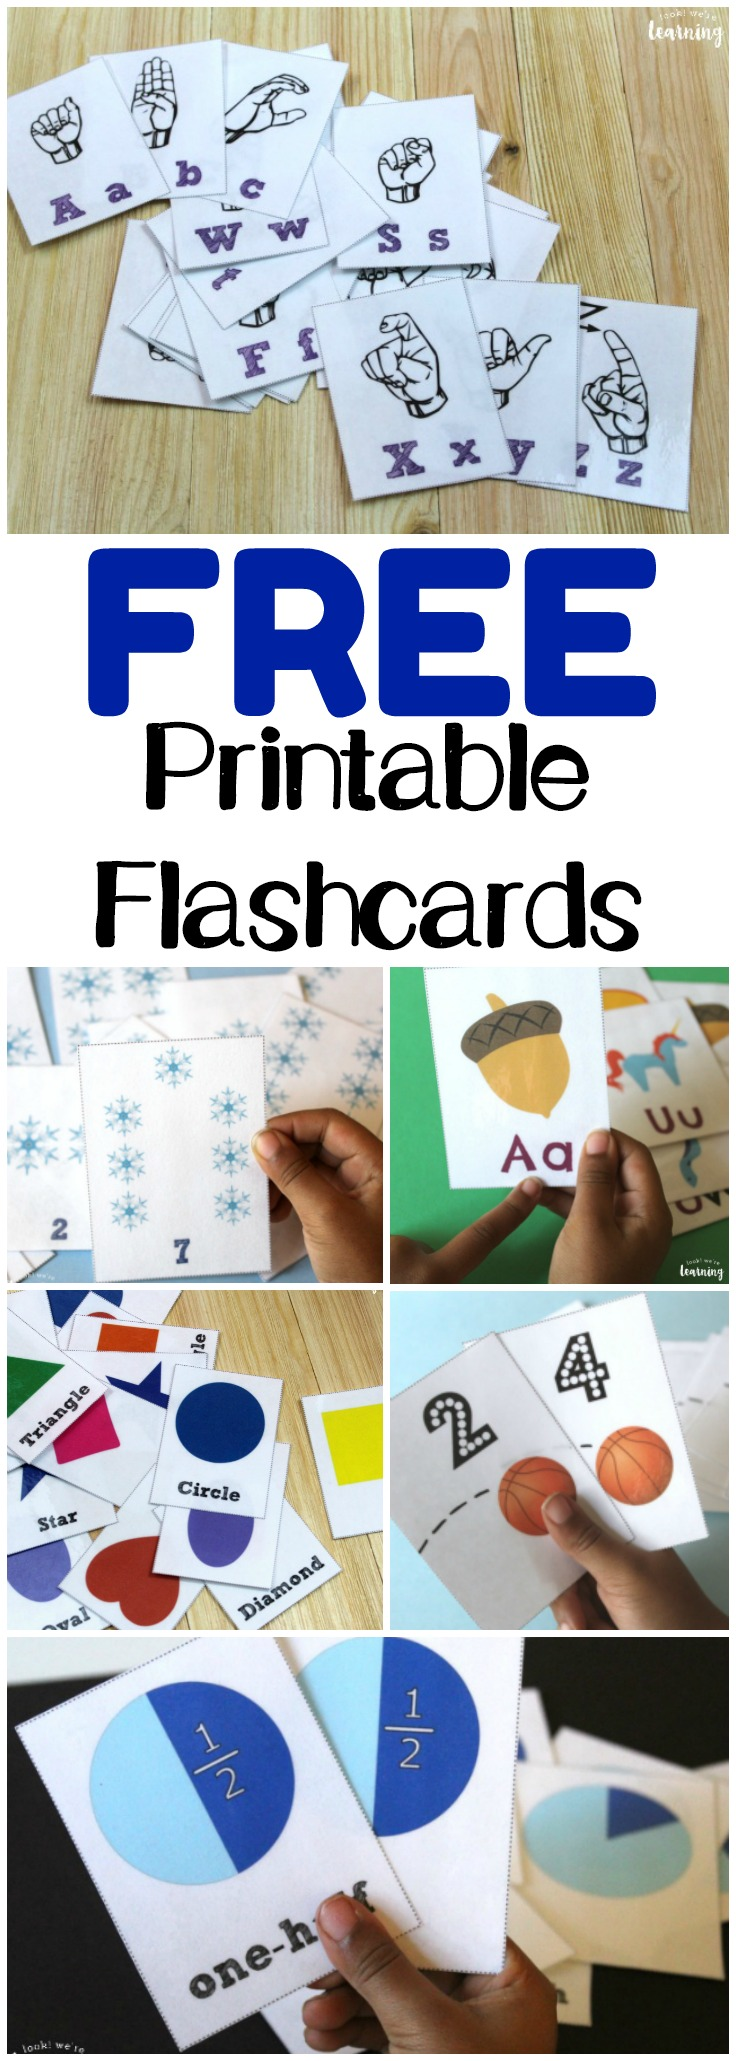 Pick up these free printable flashcards to make learning easy and fun for your students this year! There are plenty to choose from!